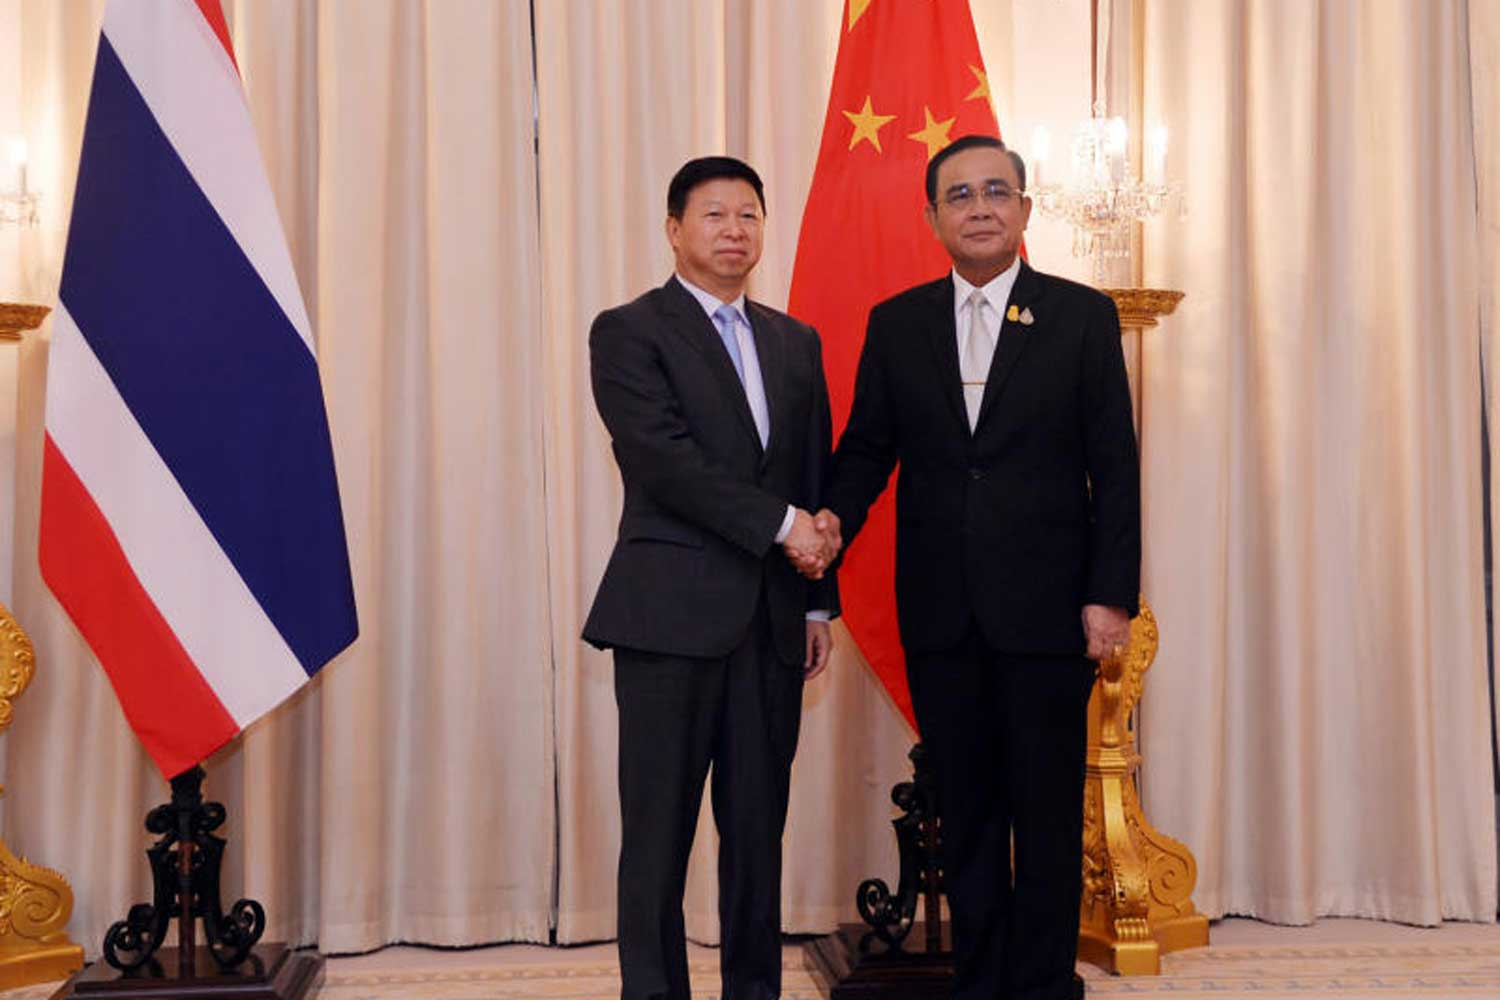 Prime Minister Prayut Chan-o-cha shakes hands with Song Tao, Minister of the International Department of the Central Committee of the Communist Party of China, at Government House on Thursday. (Government House photo)